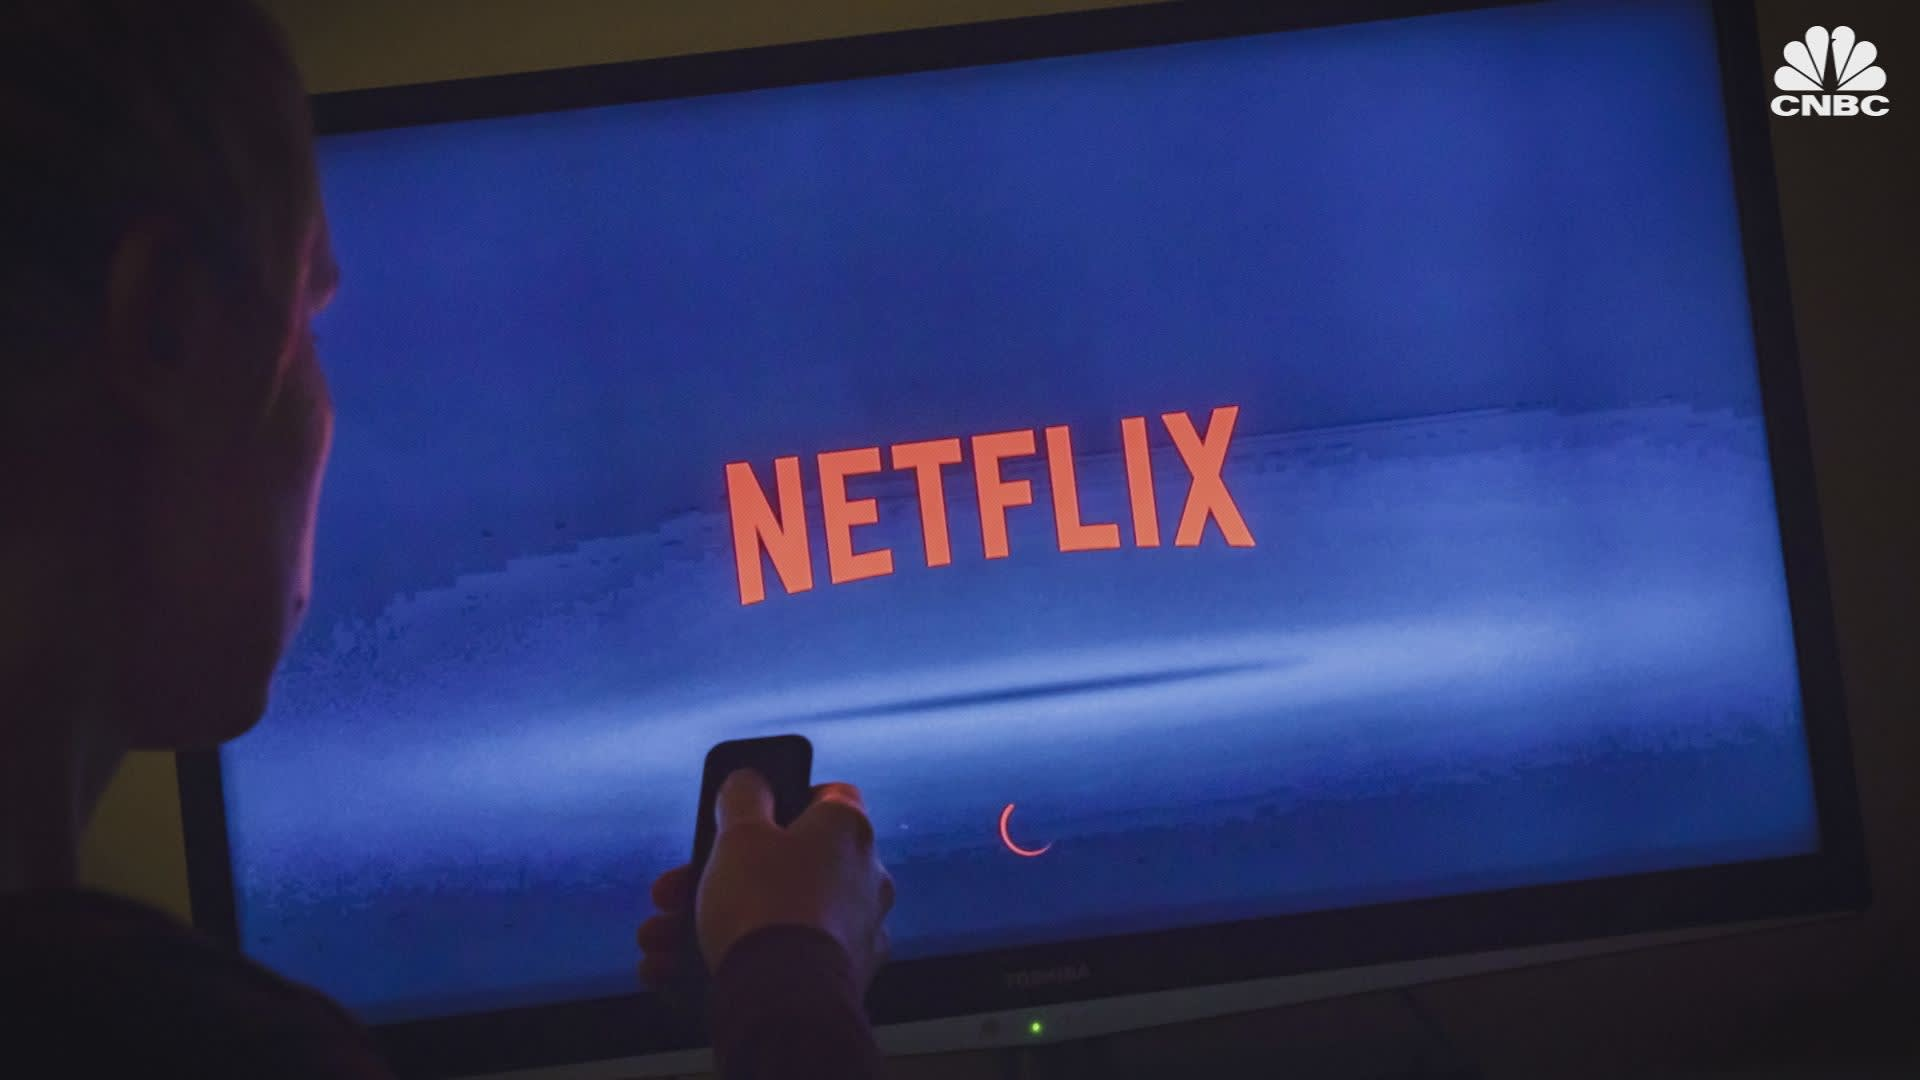 Analysts stick by plunging Netflix shares, see comeback this quarter driven by 'Stranger Things'